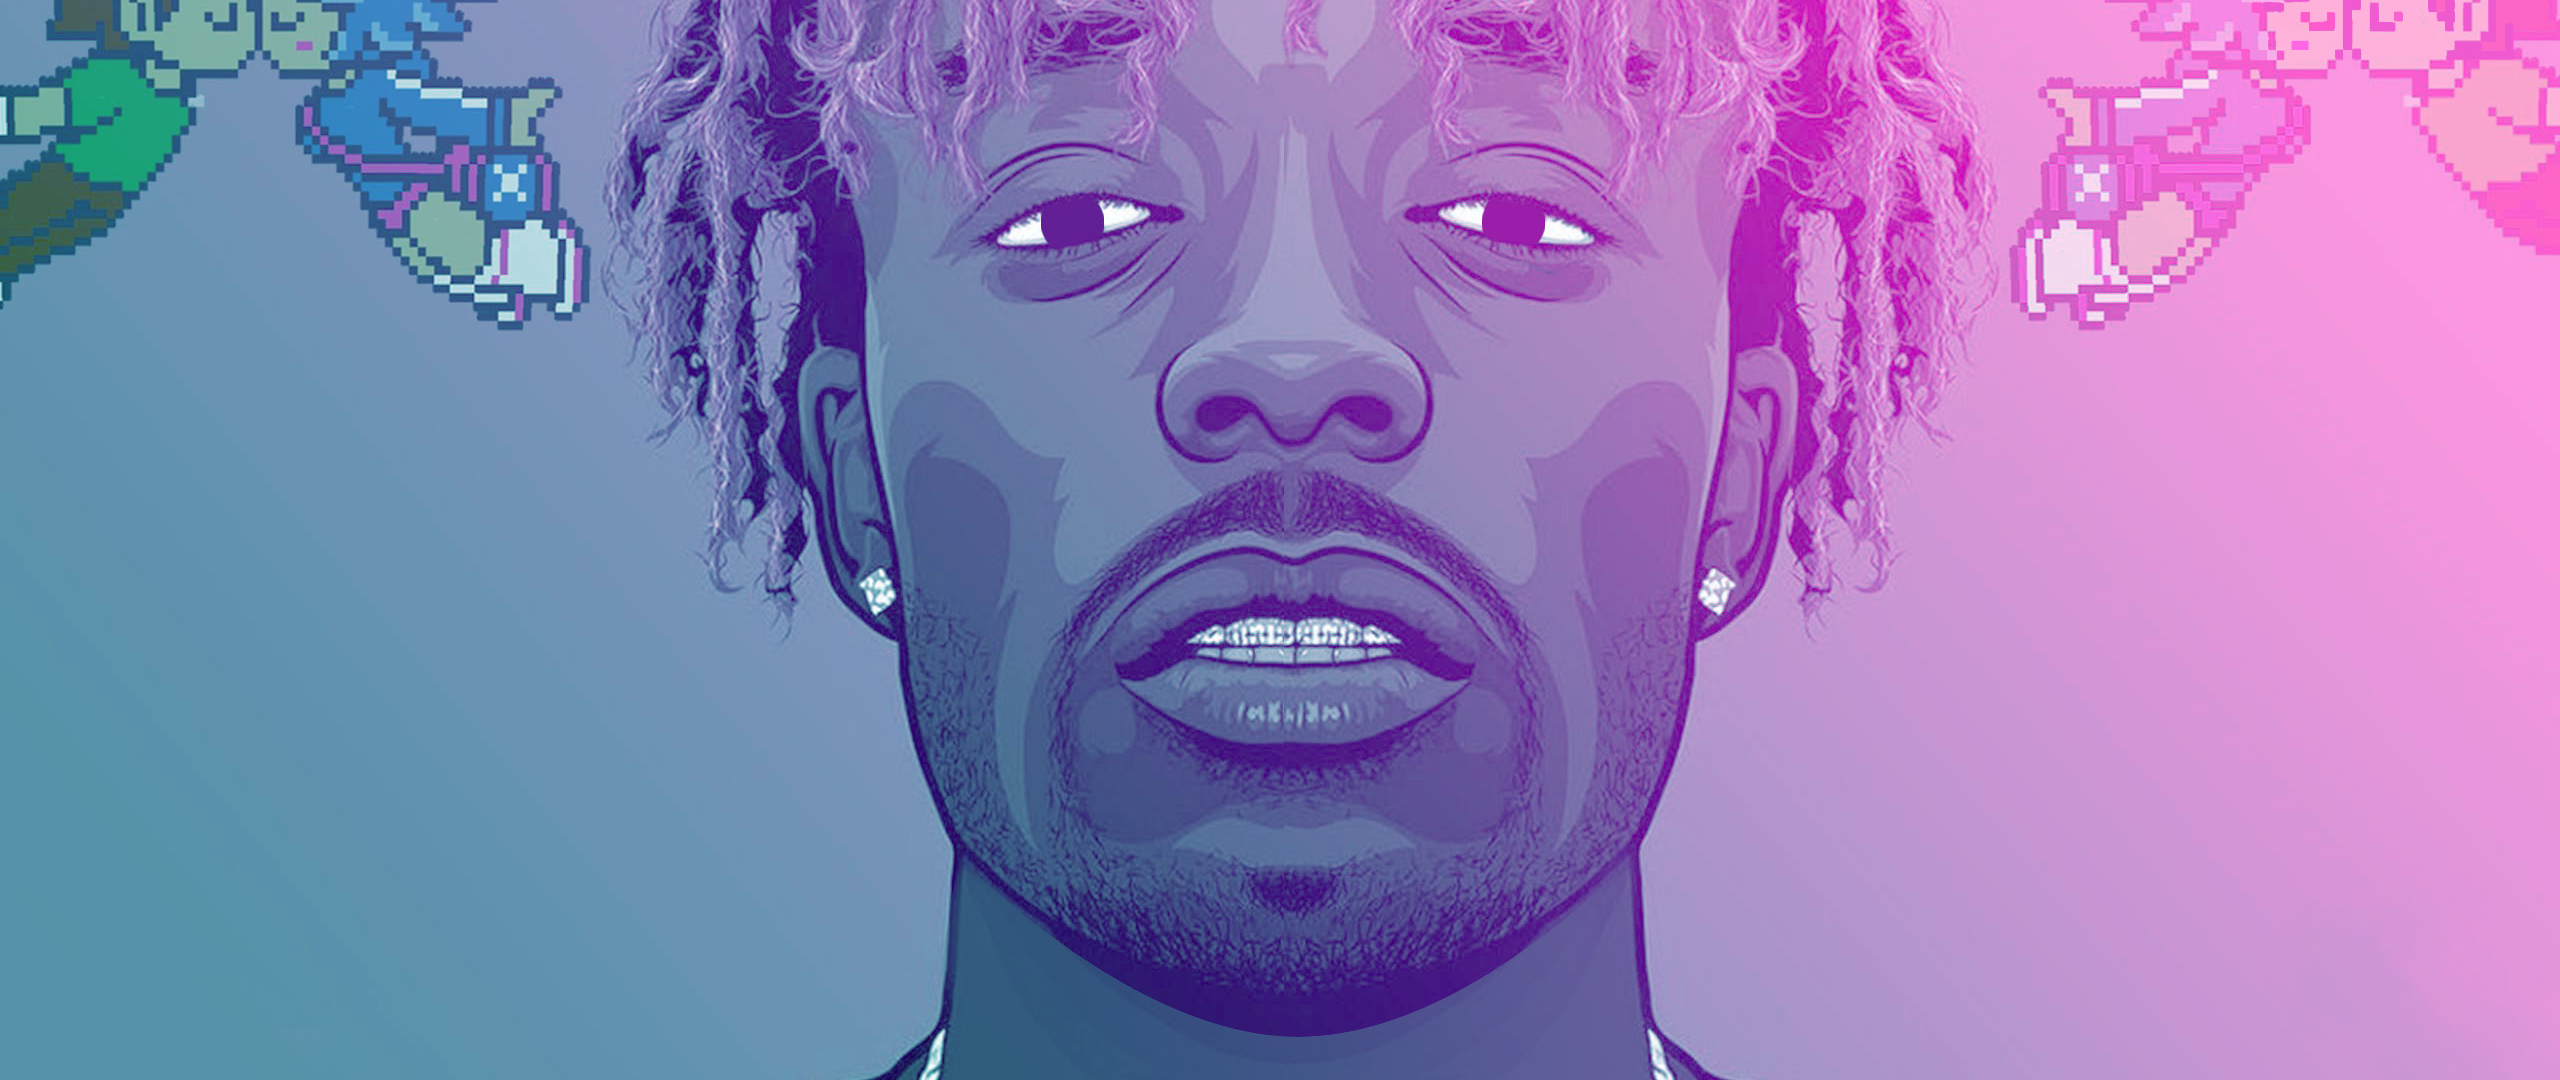 2560x1080 Lil Uzi Vert Art 2560x1080 Resolution Wallpaper Hd Music 4k Wallpapers Images Photos And Background Find gifs with the latest and newest hashtags! 2560x1080 lil uzi vert art 2560x1080